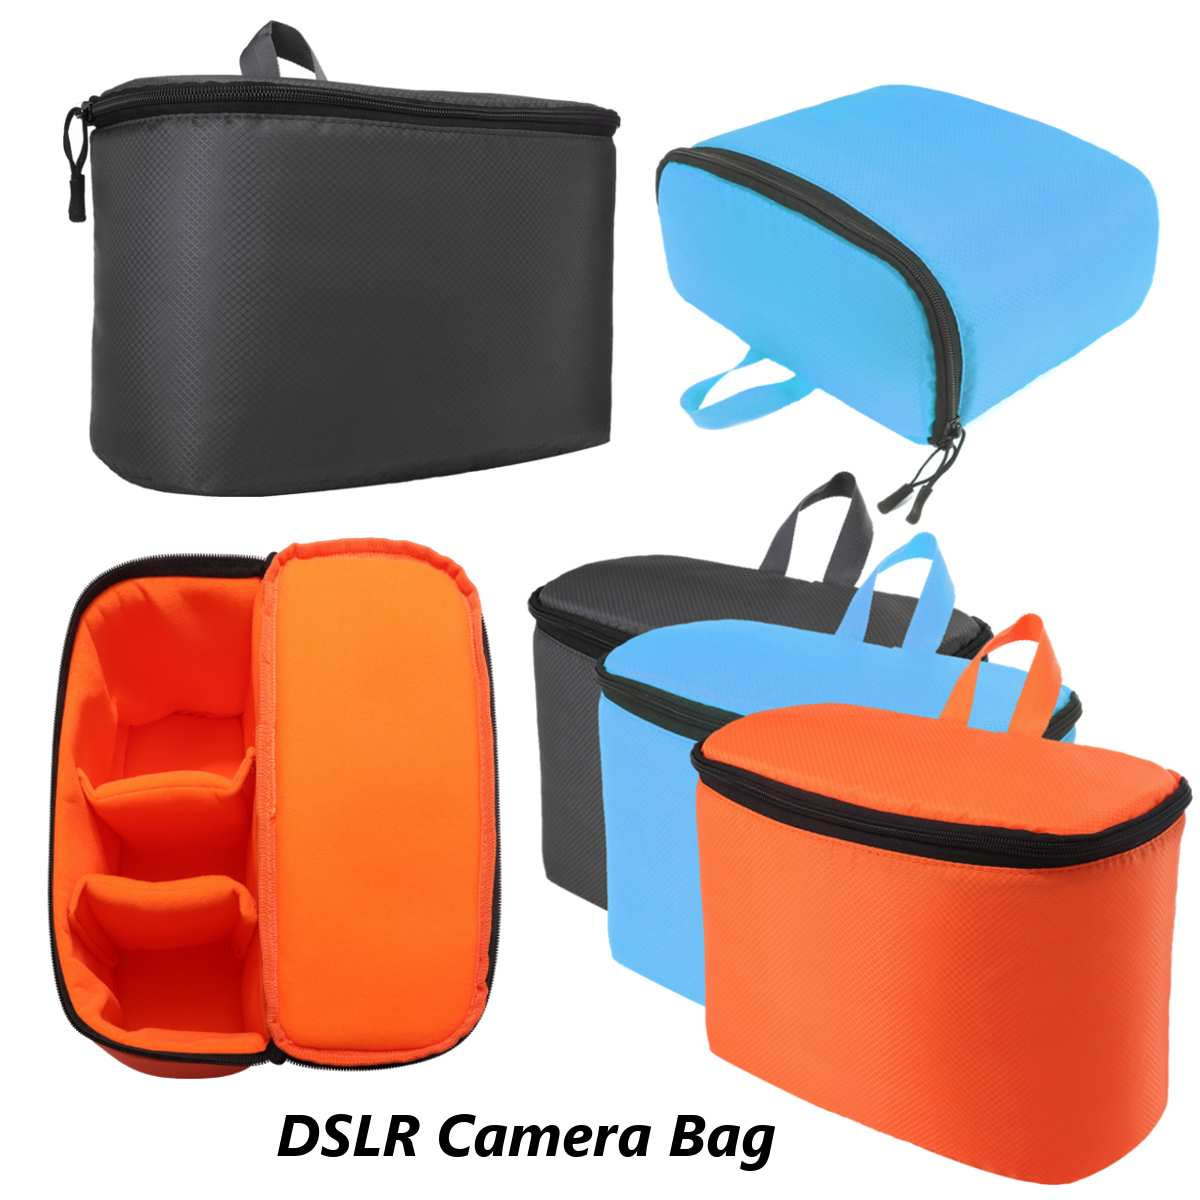 Mirrorless Camera Bag #2 Foldable Waterproof Insert Padded Mirrorless Camera Bag Inner Divider Partition Folding Protective Pouch for Mirrorless Camera